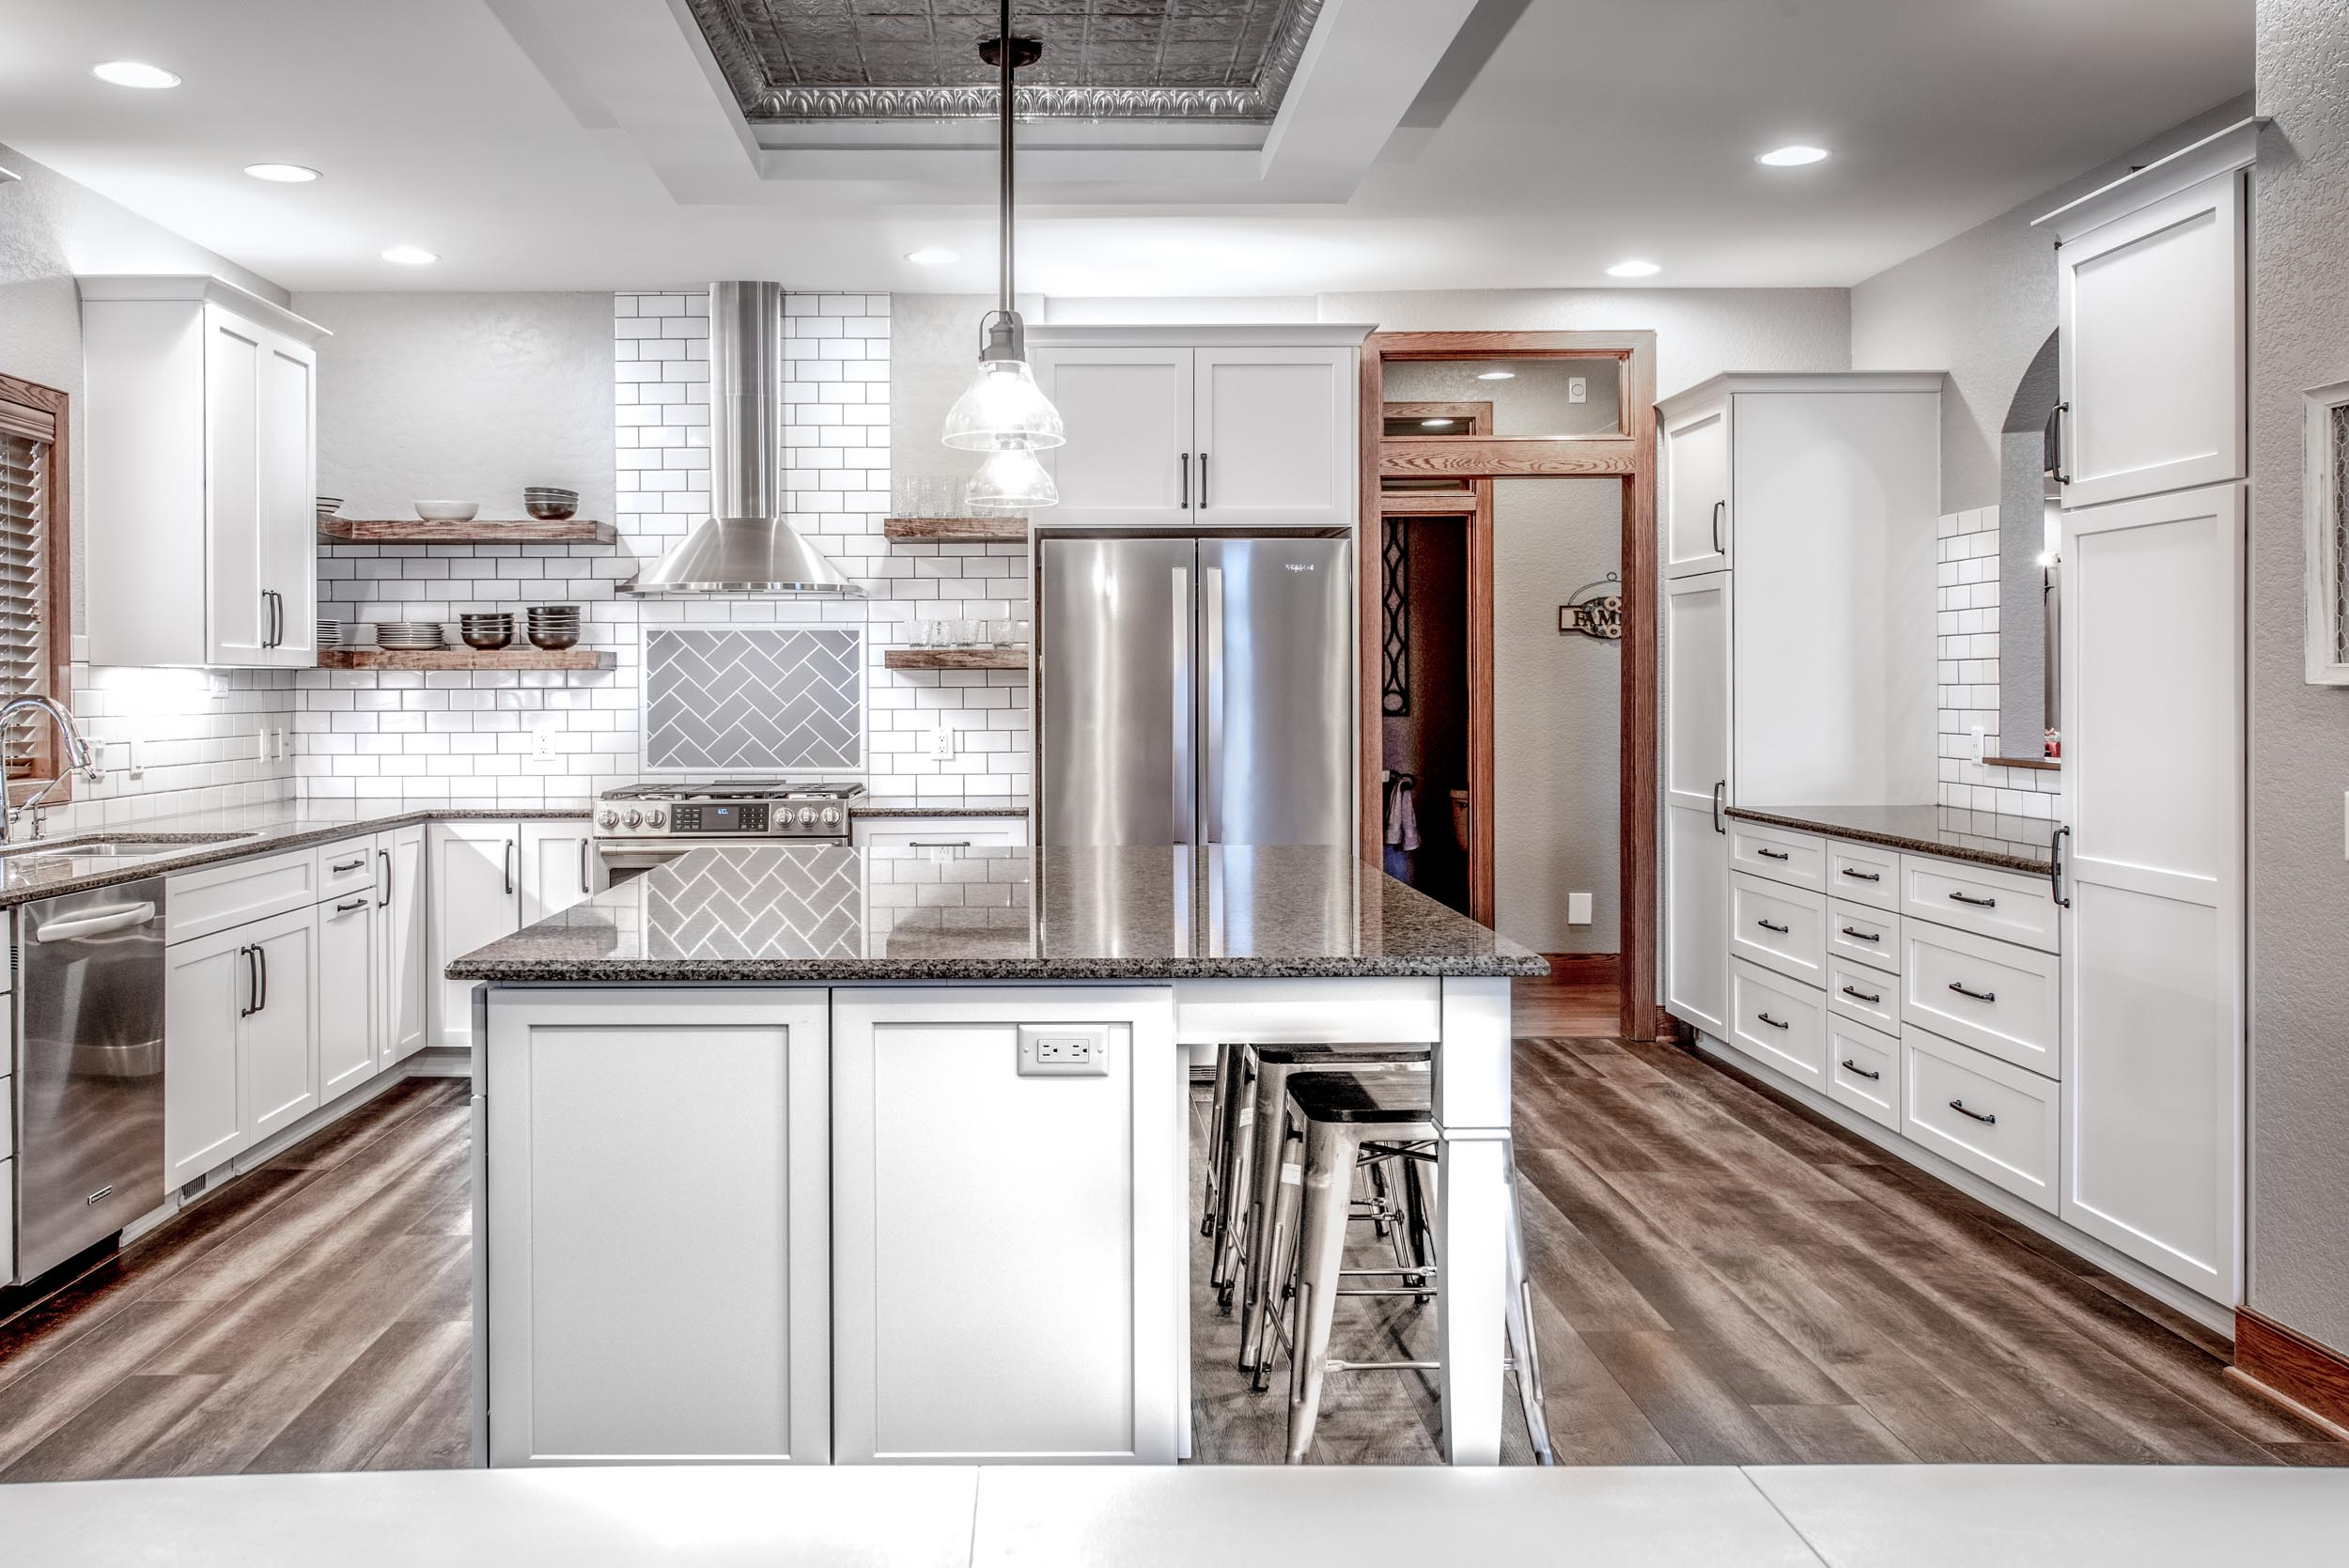 How To Get A Layered Lighting Look In A Kitchen Remodel ...